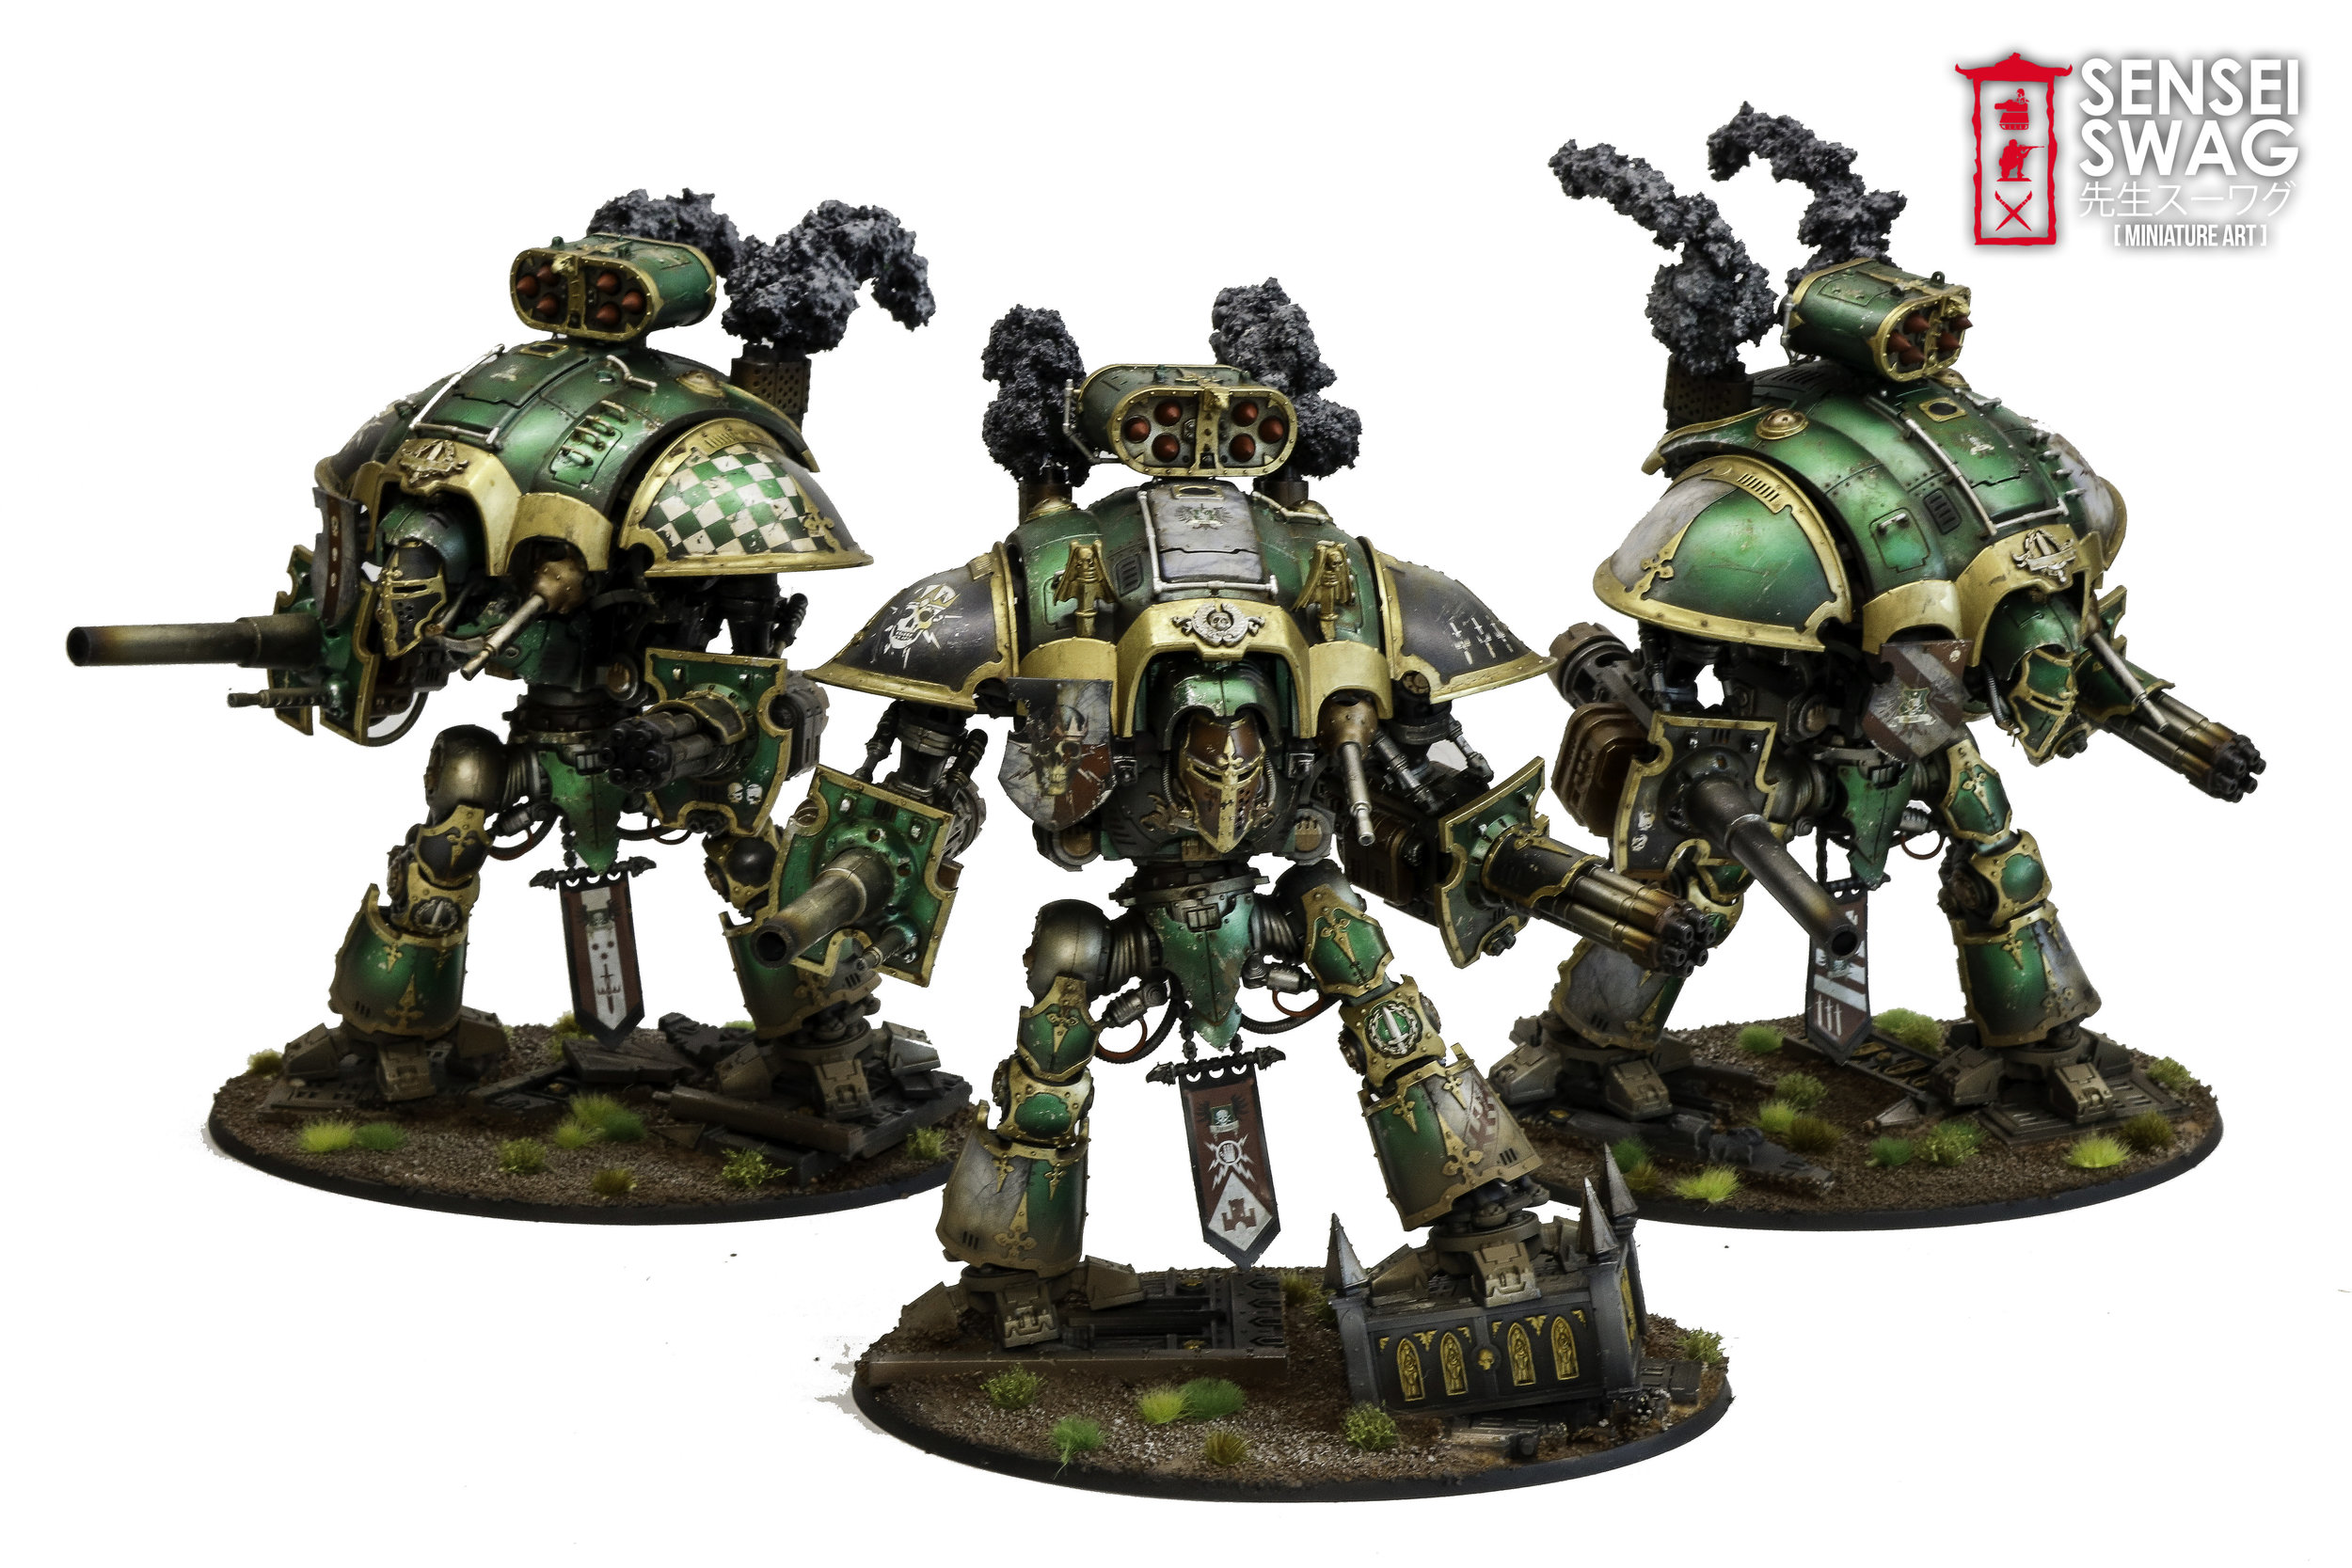 House Vyronii Imperial Knights Crusader Candy Airbrush Watermark-2.jpg